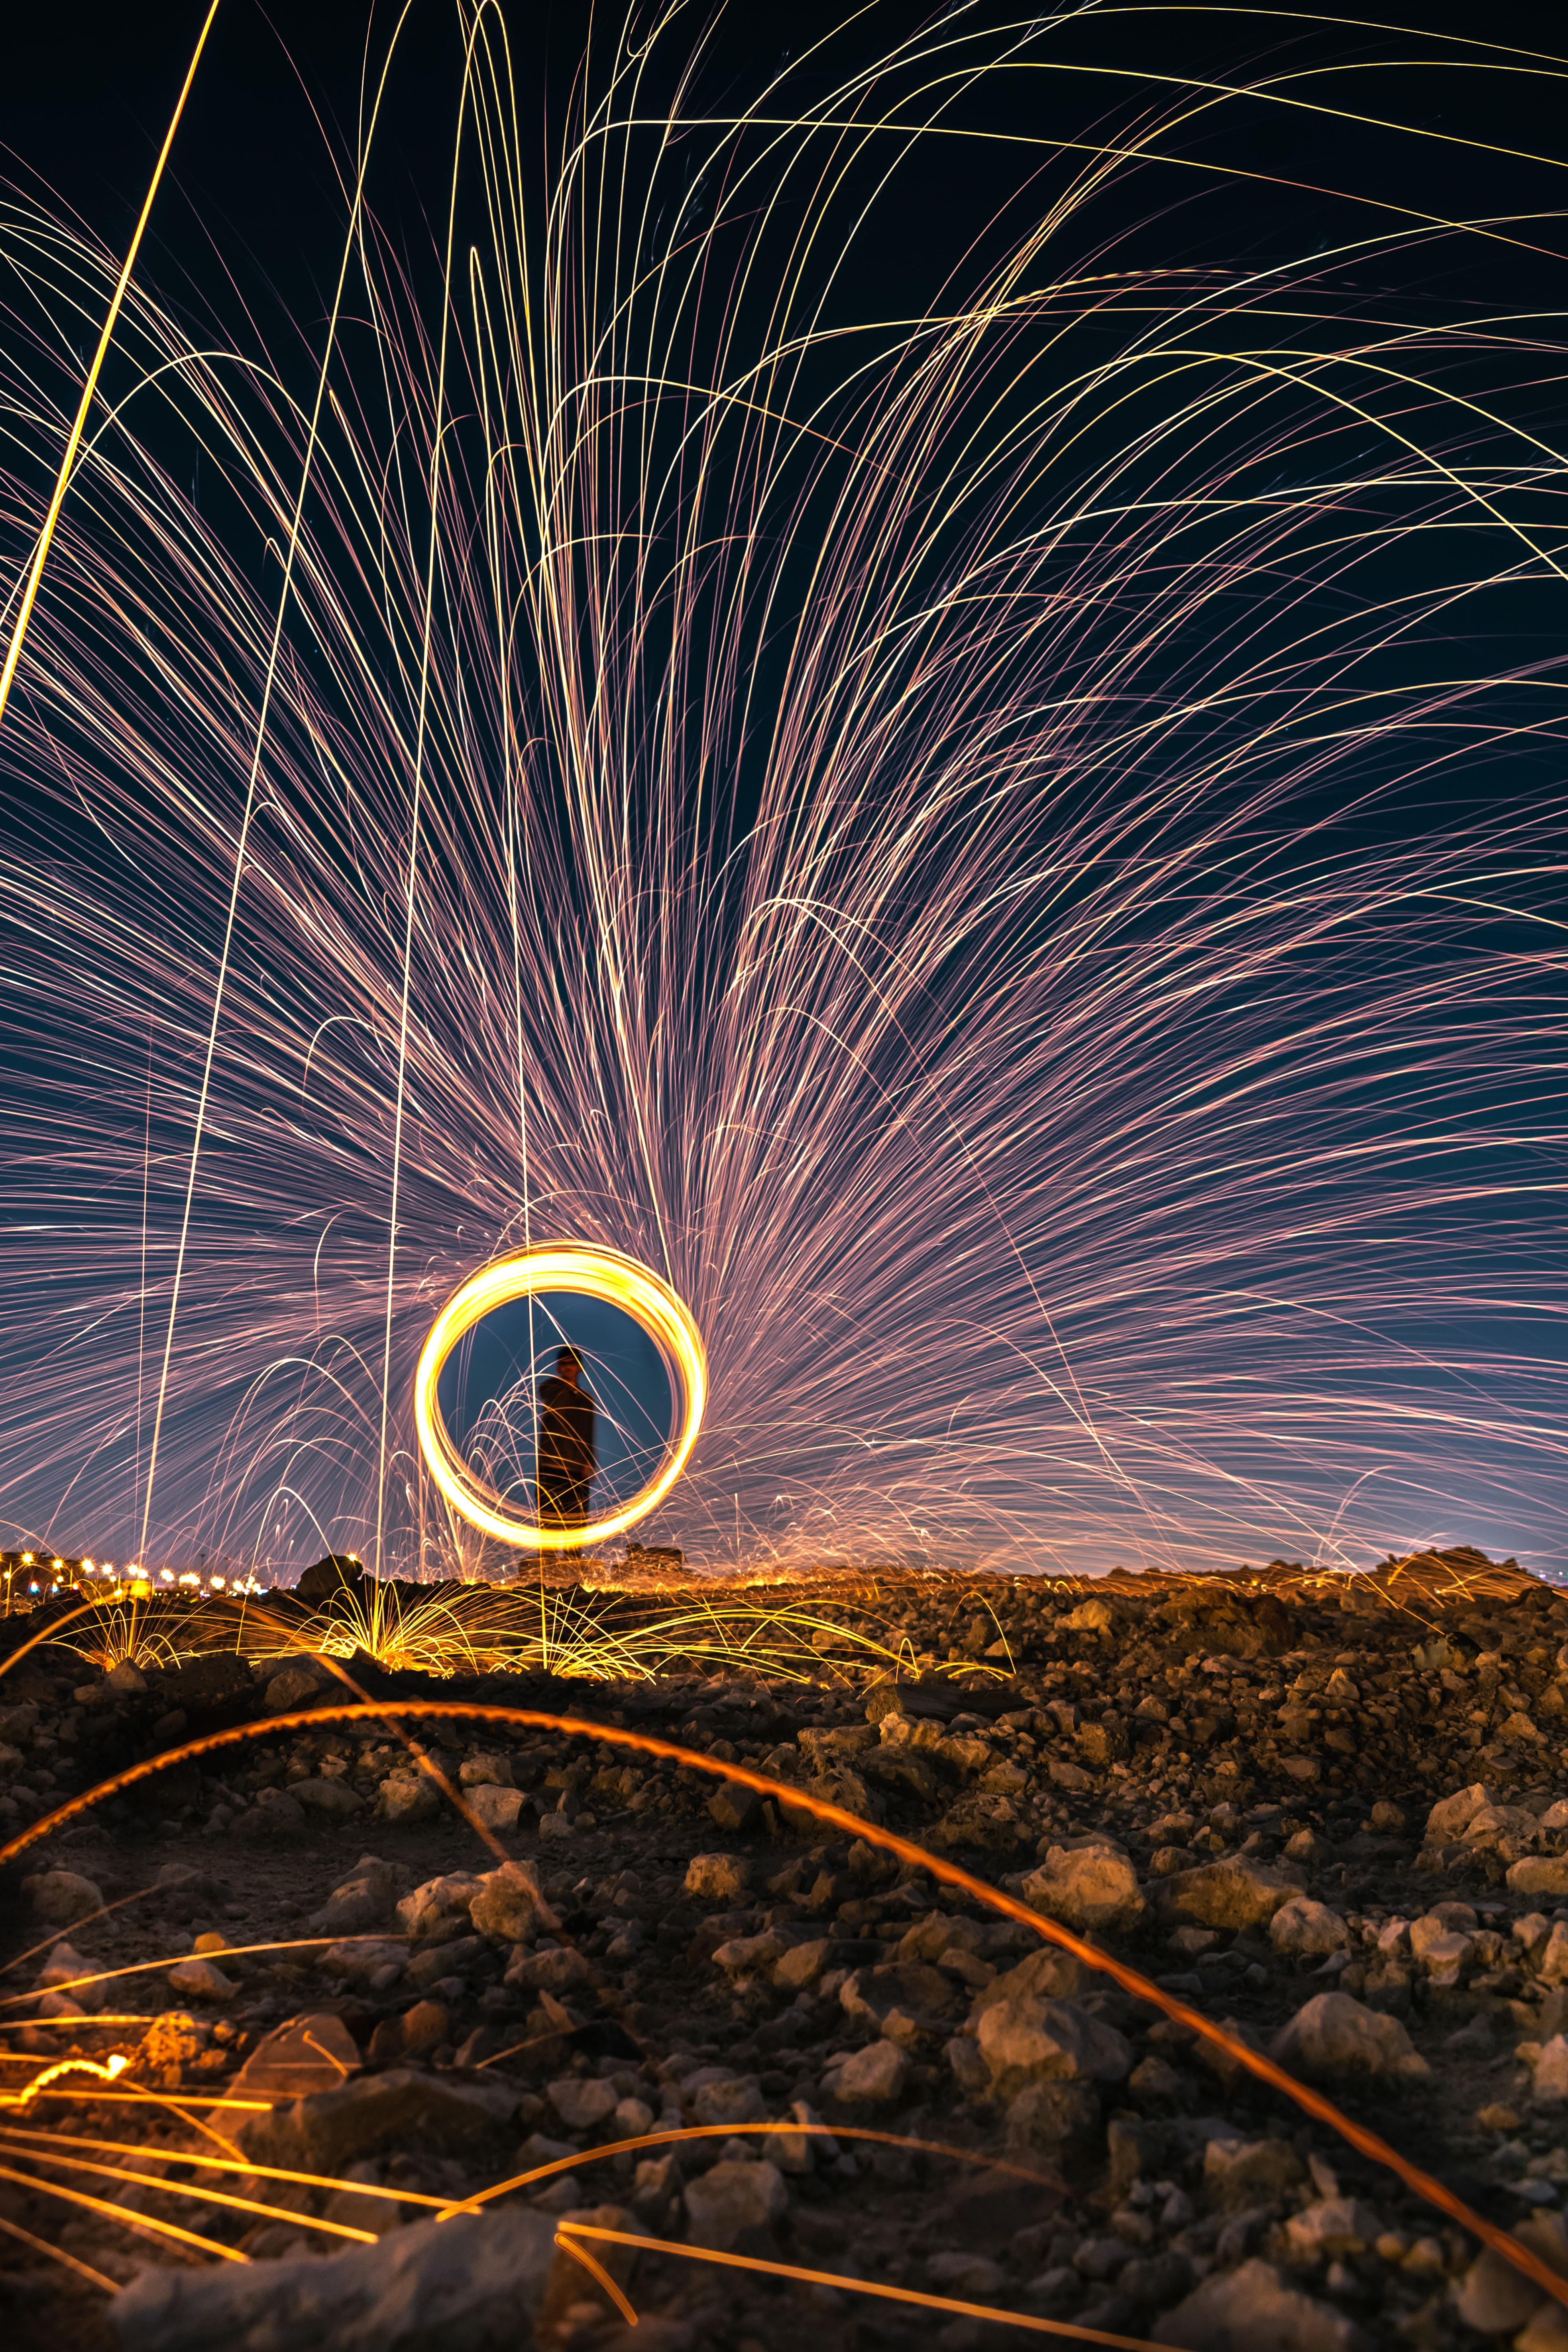 steel wool photography during night time